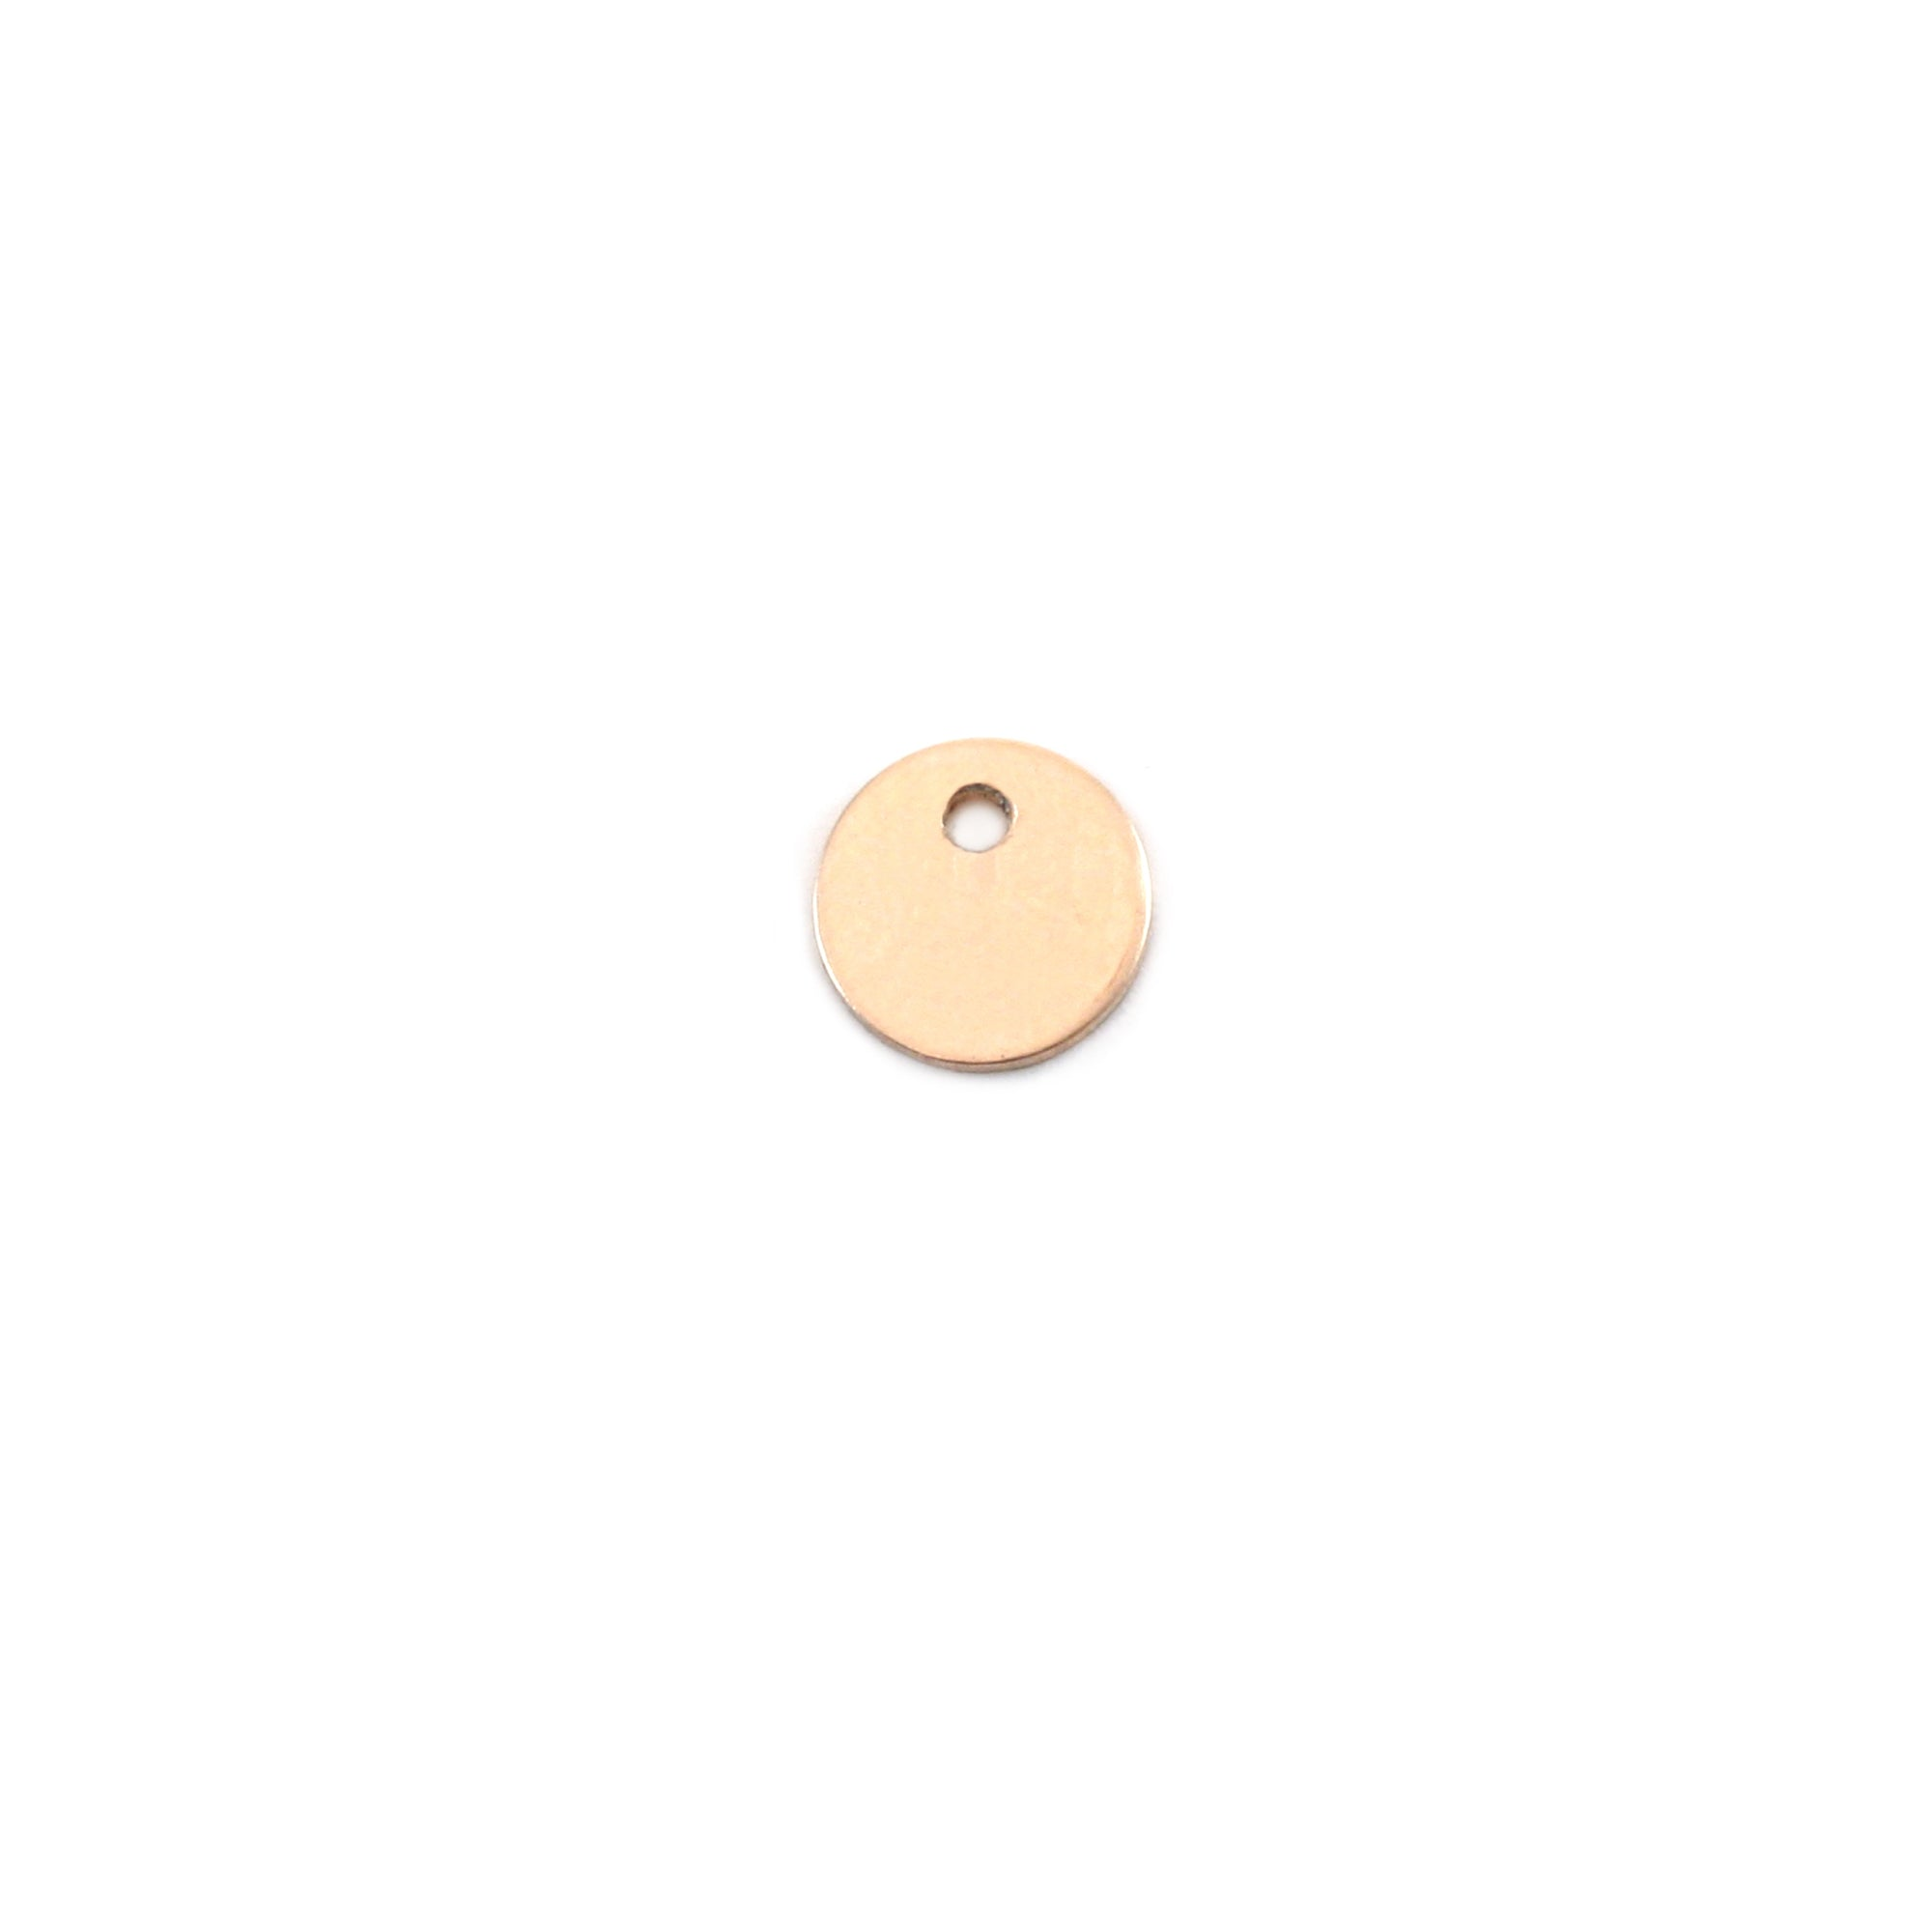 GLD294 8mm 24 k Shiny Gold Plated  Two Holes Round Disc Charms